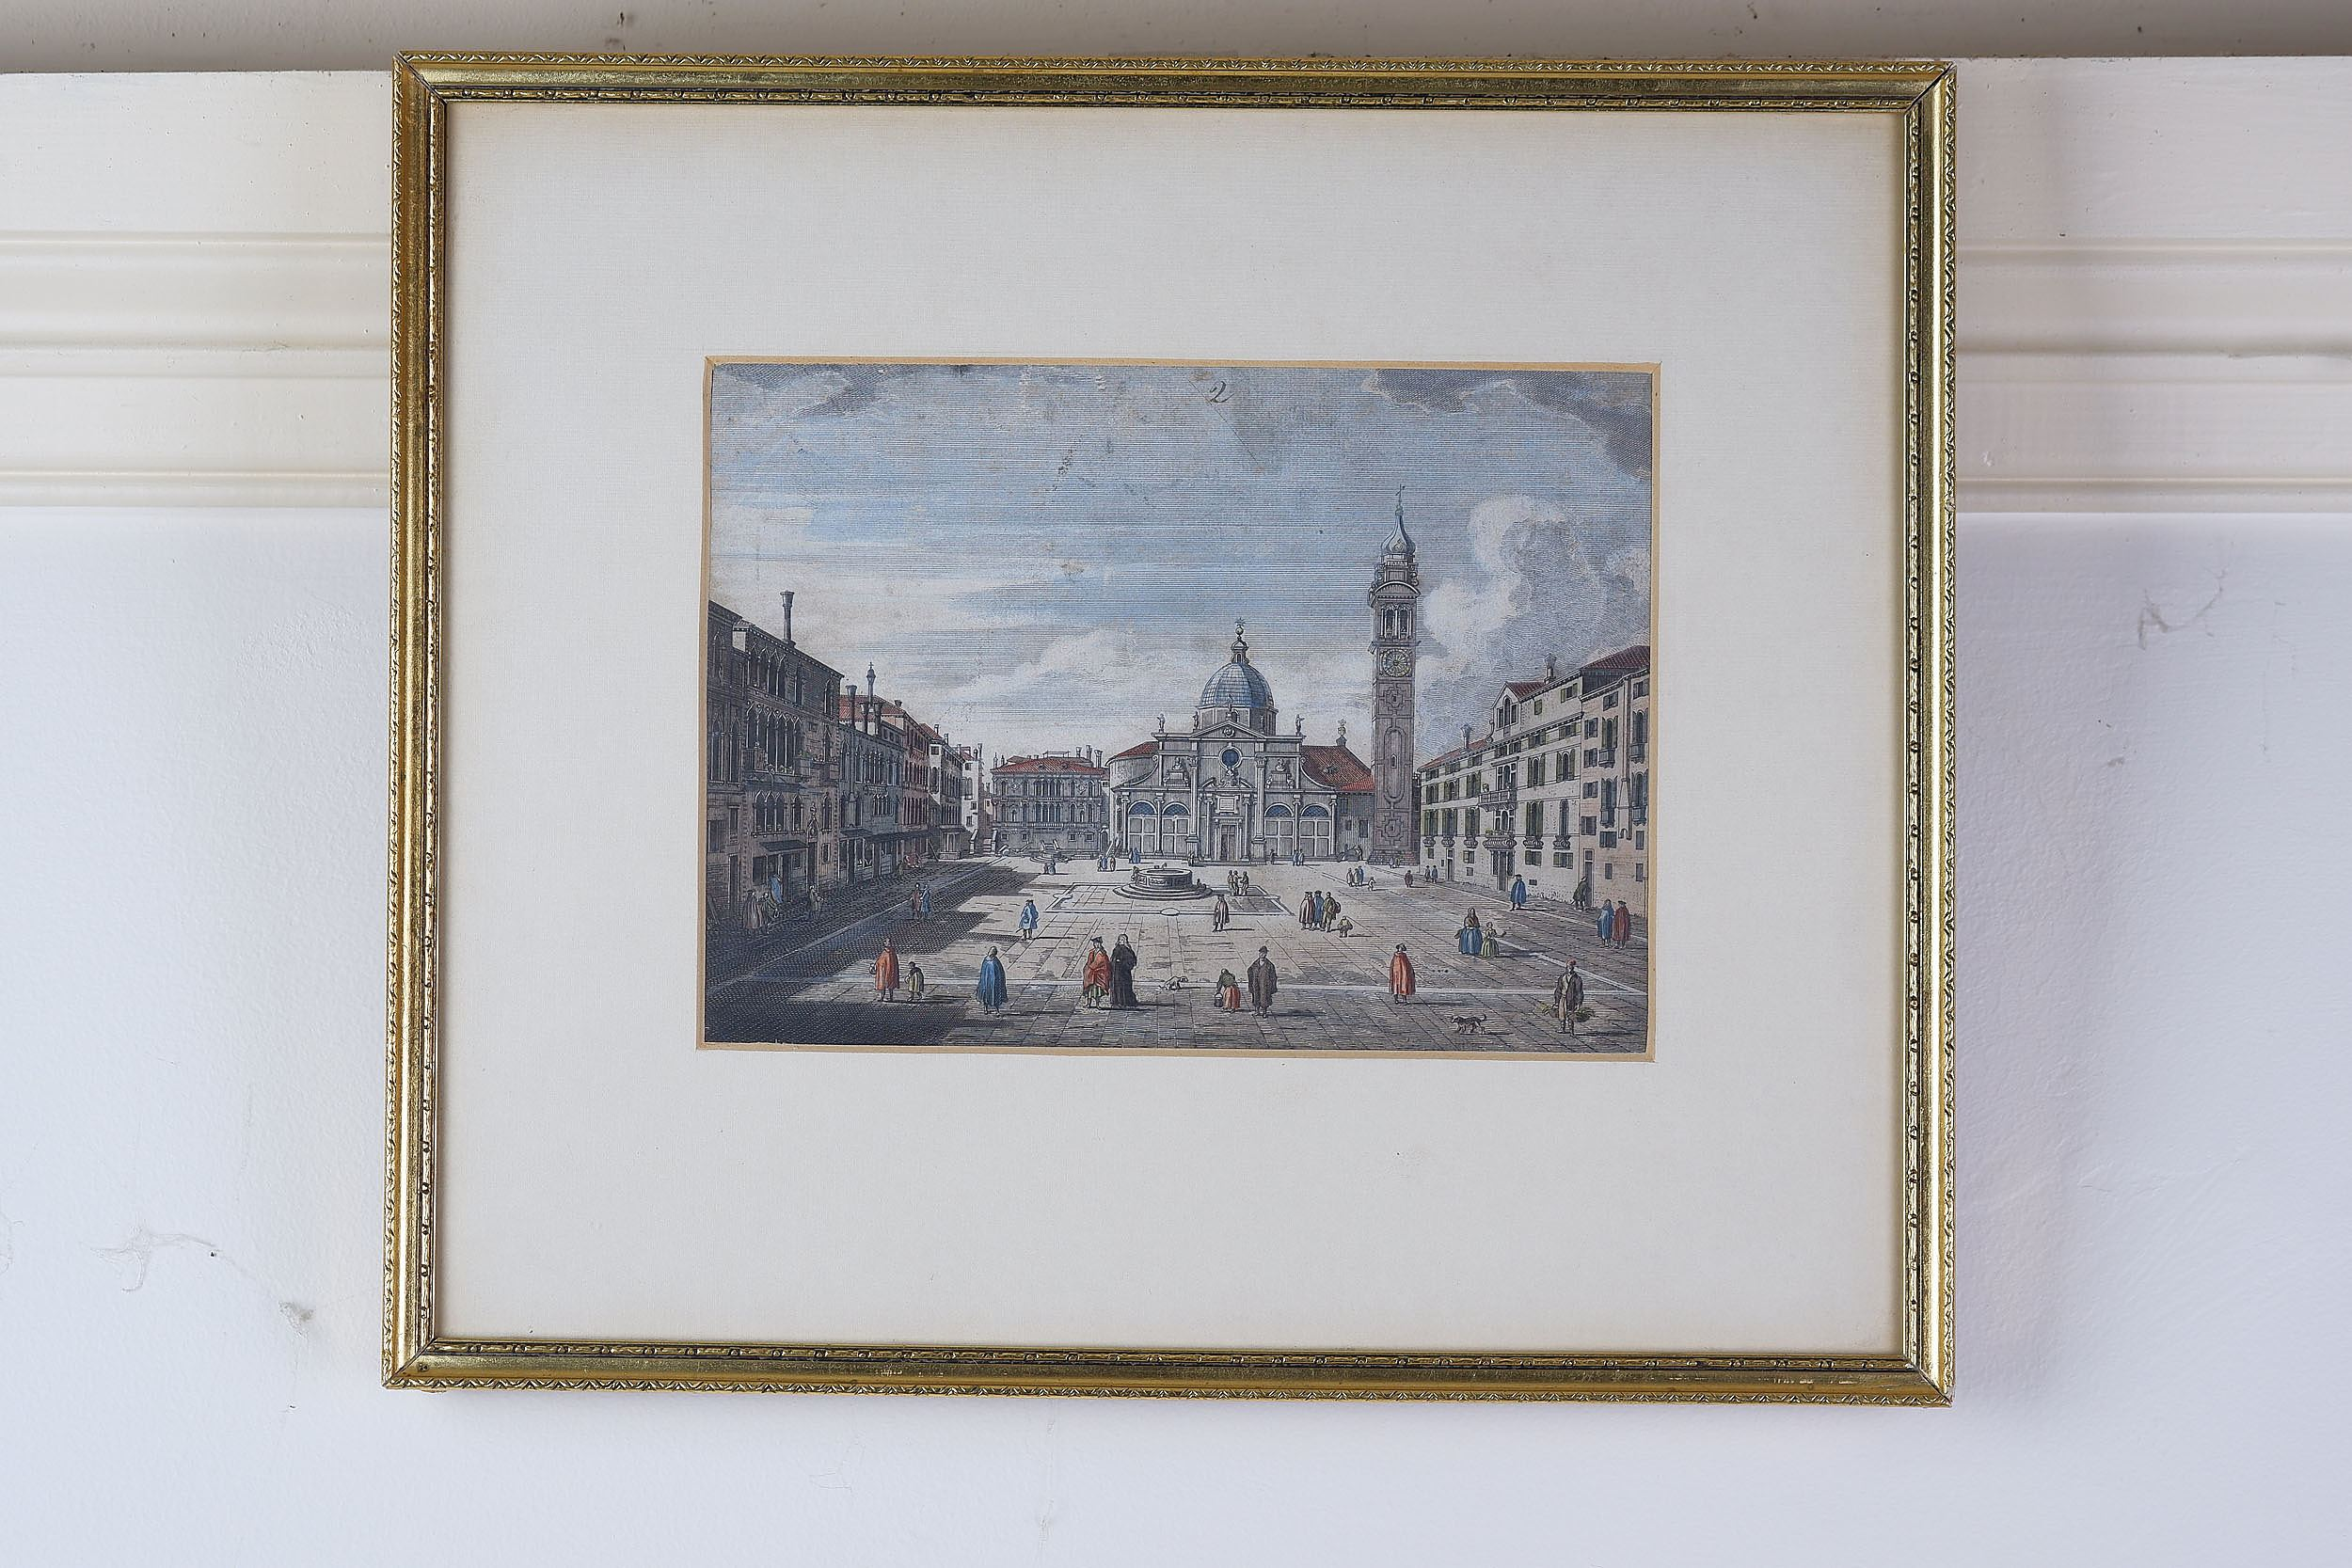 'After Canaletto, Three Views of Venice, Hand Coloured Engravings'